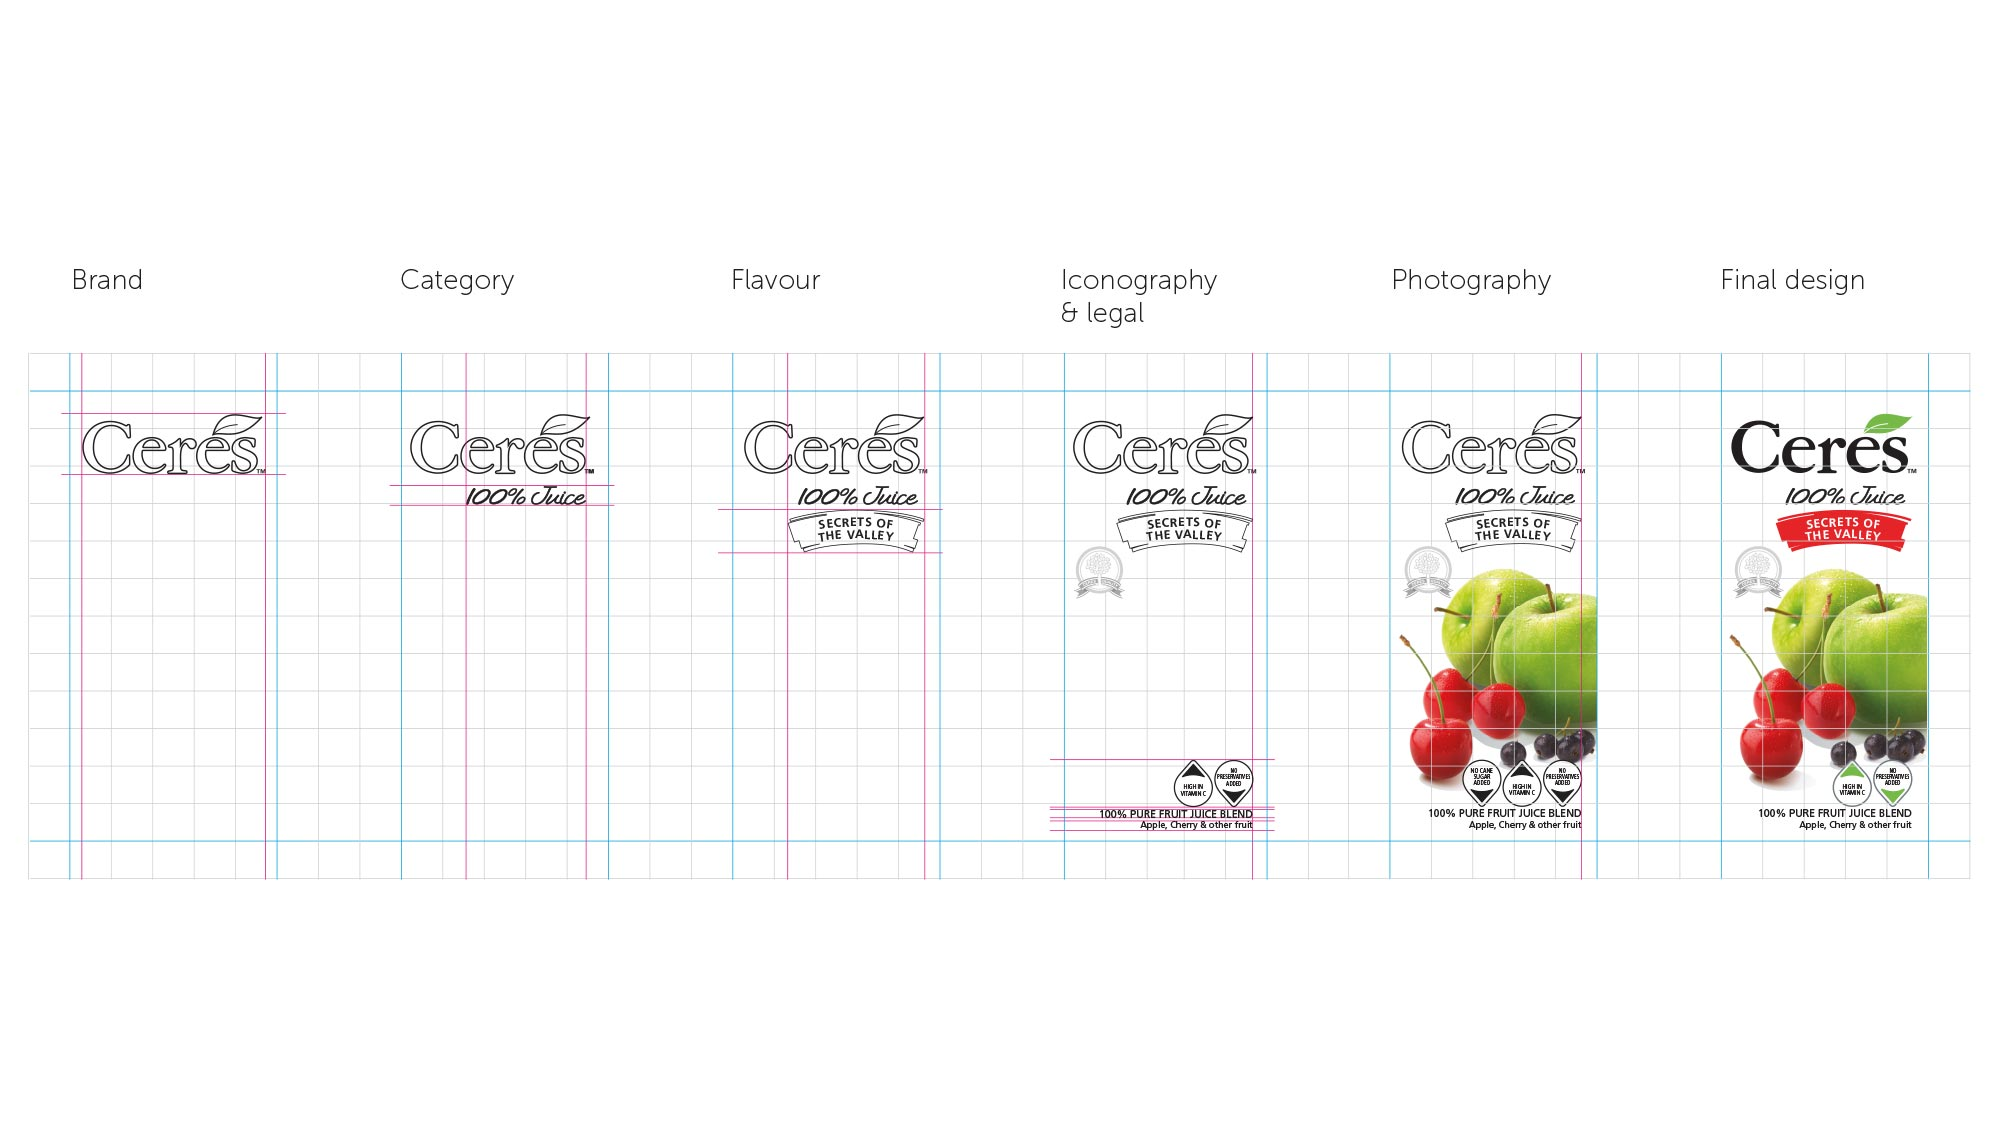 Ceres Packaging Design Strategy